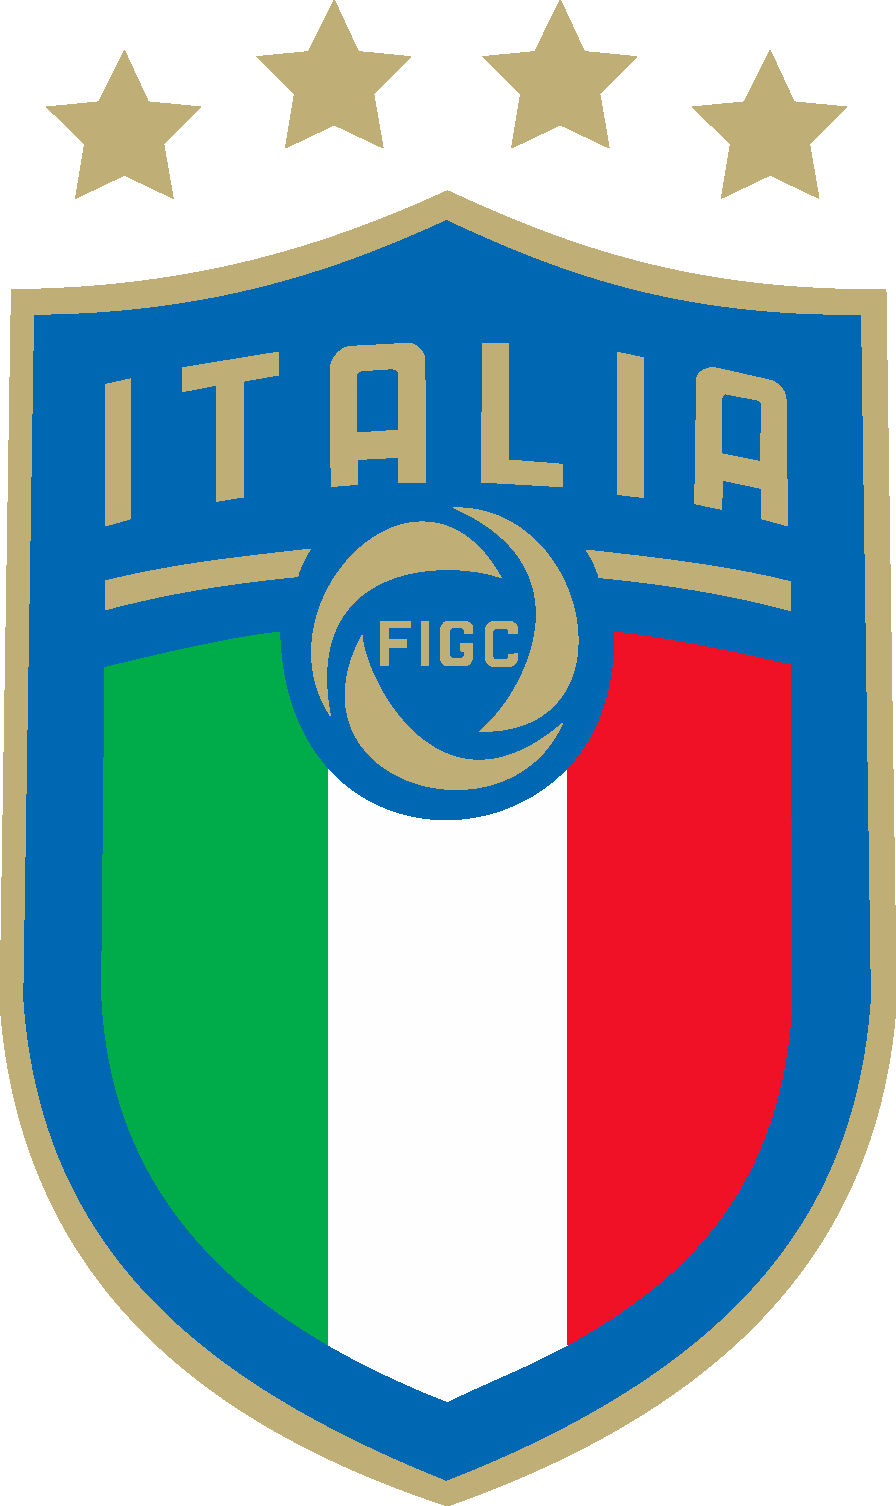 Italian federation italy national. Heartbeat clipart football